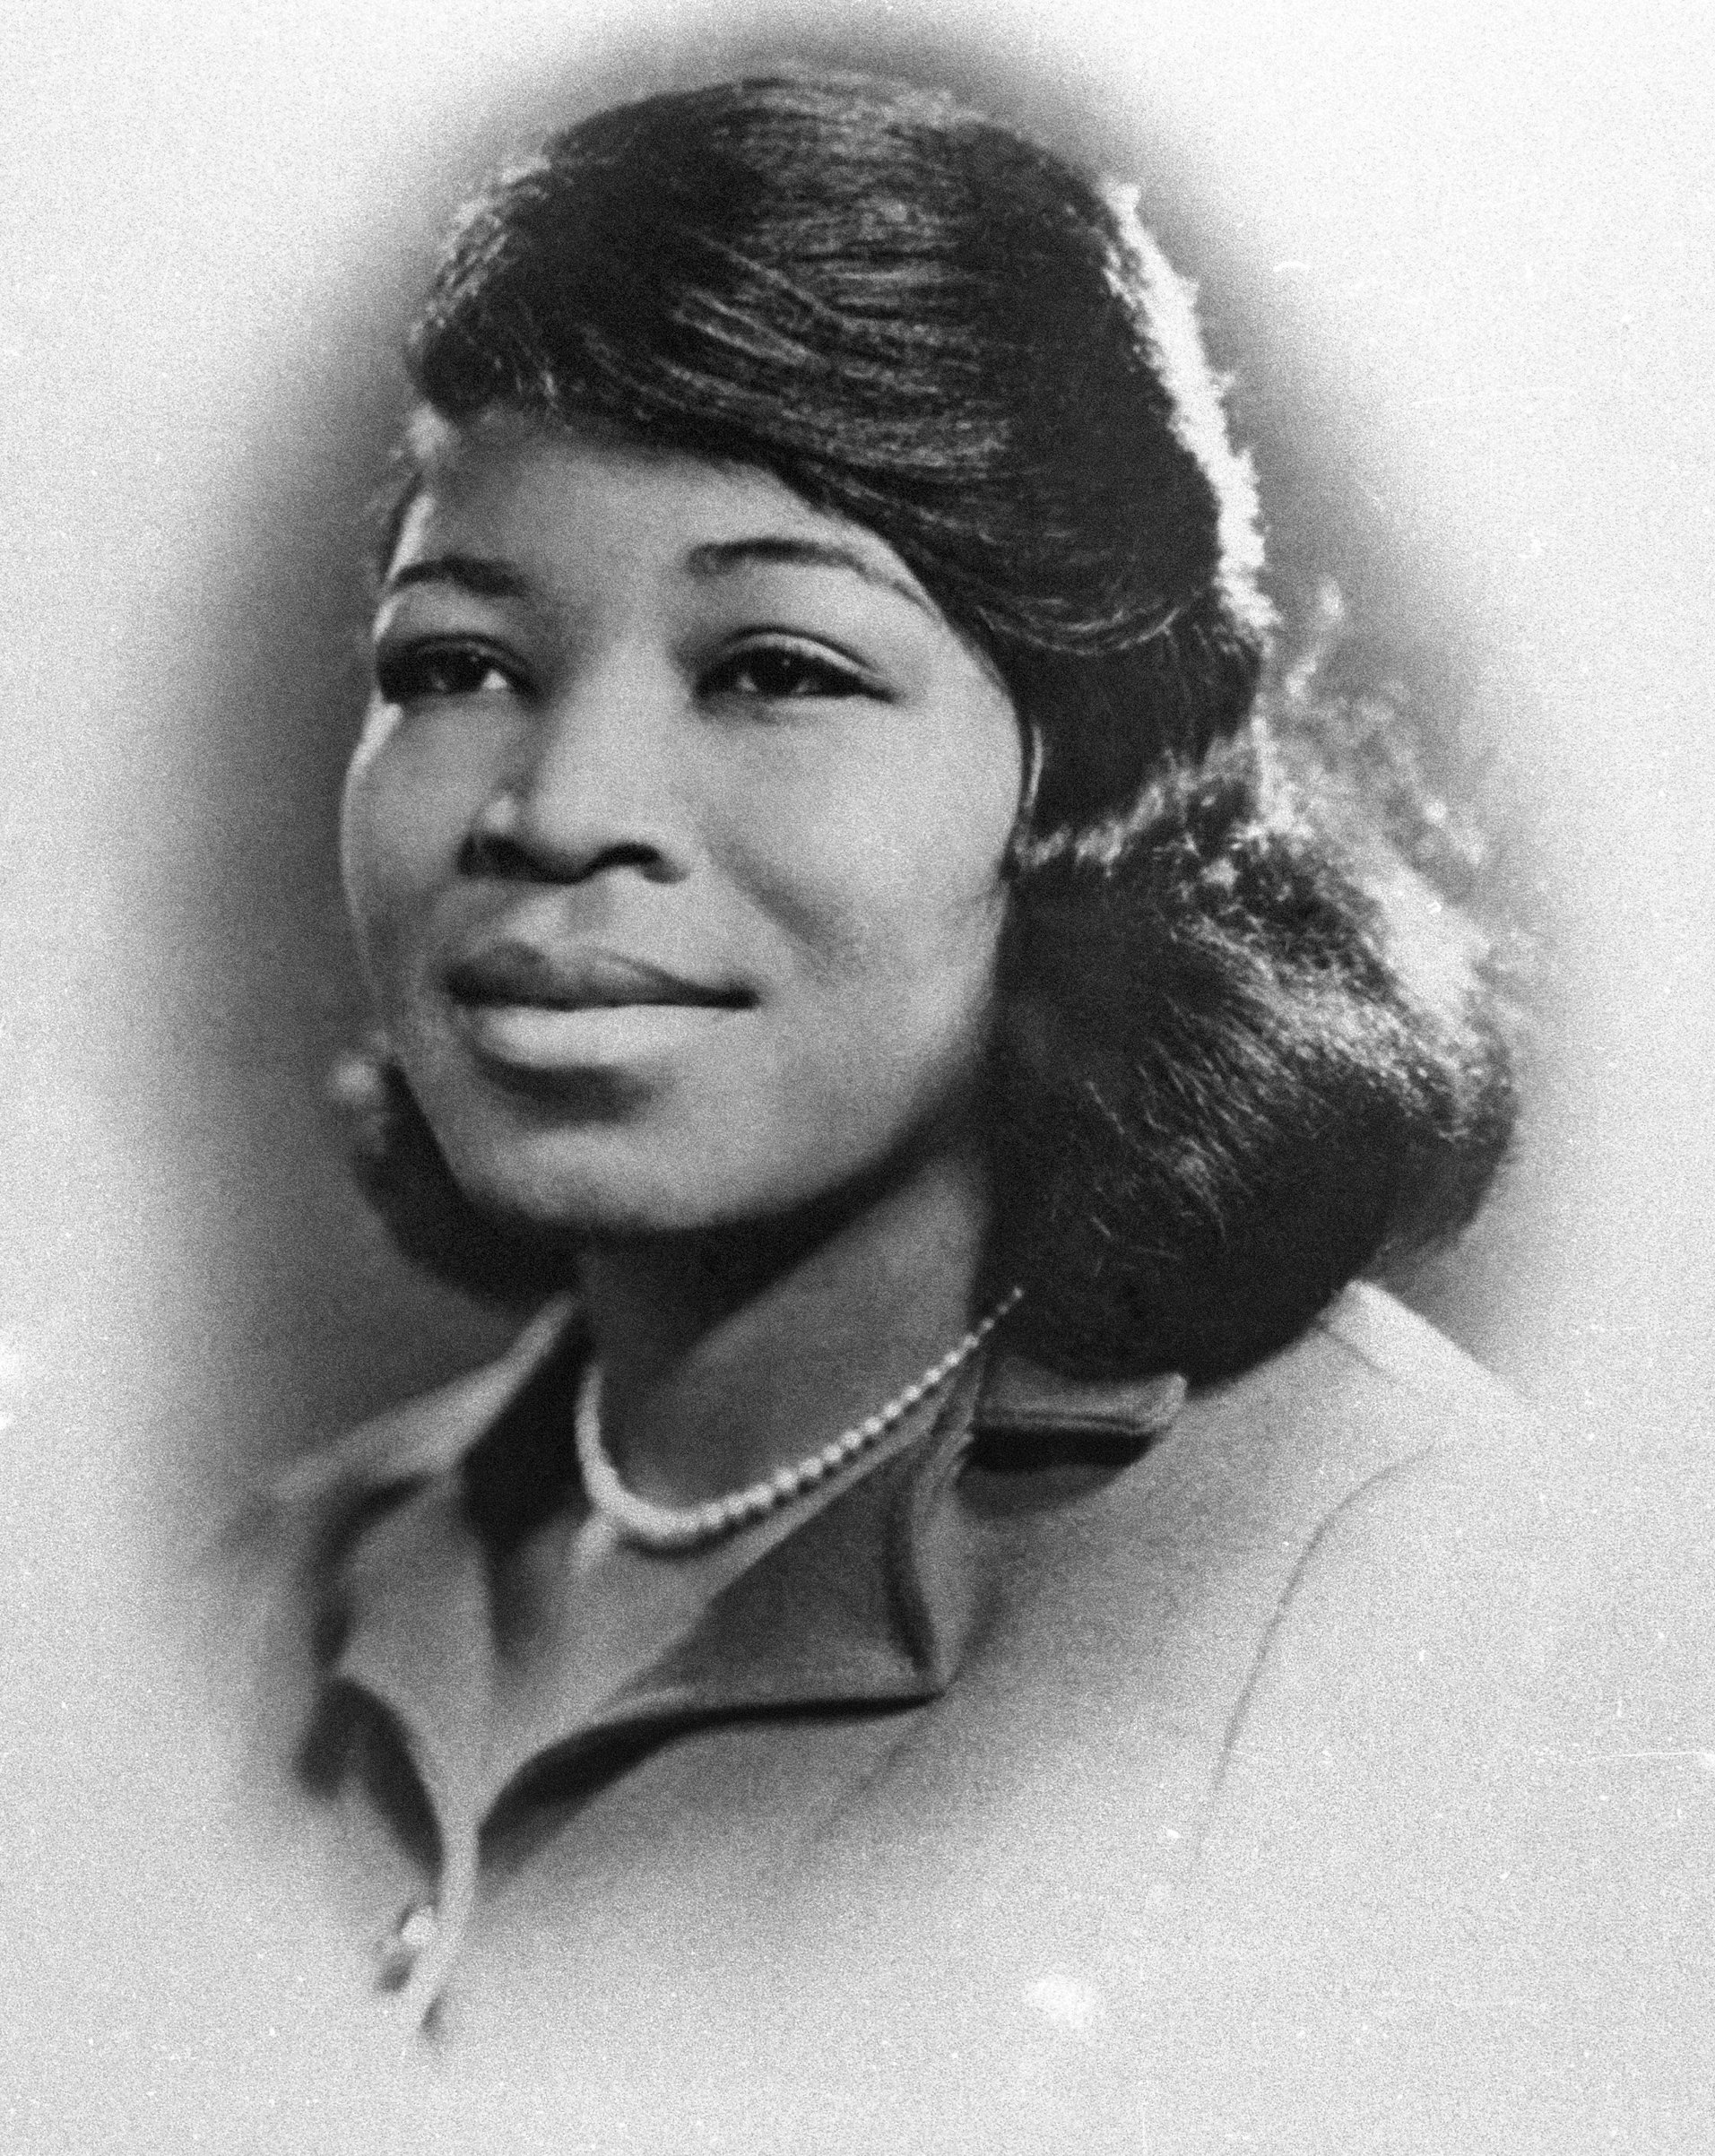 Betty Shabazz (Wife of Malcolm X) poses for a portrait circa 1964 in New York City.